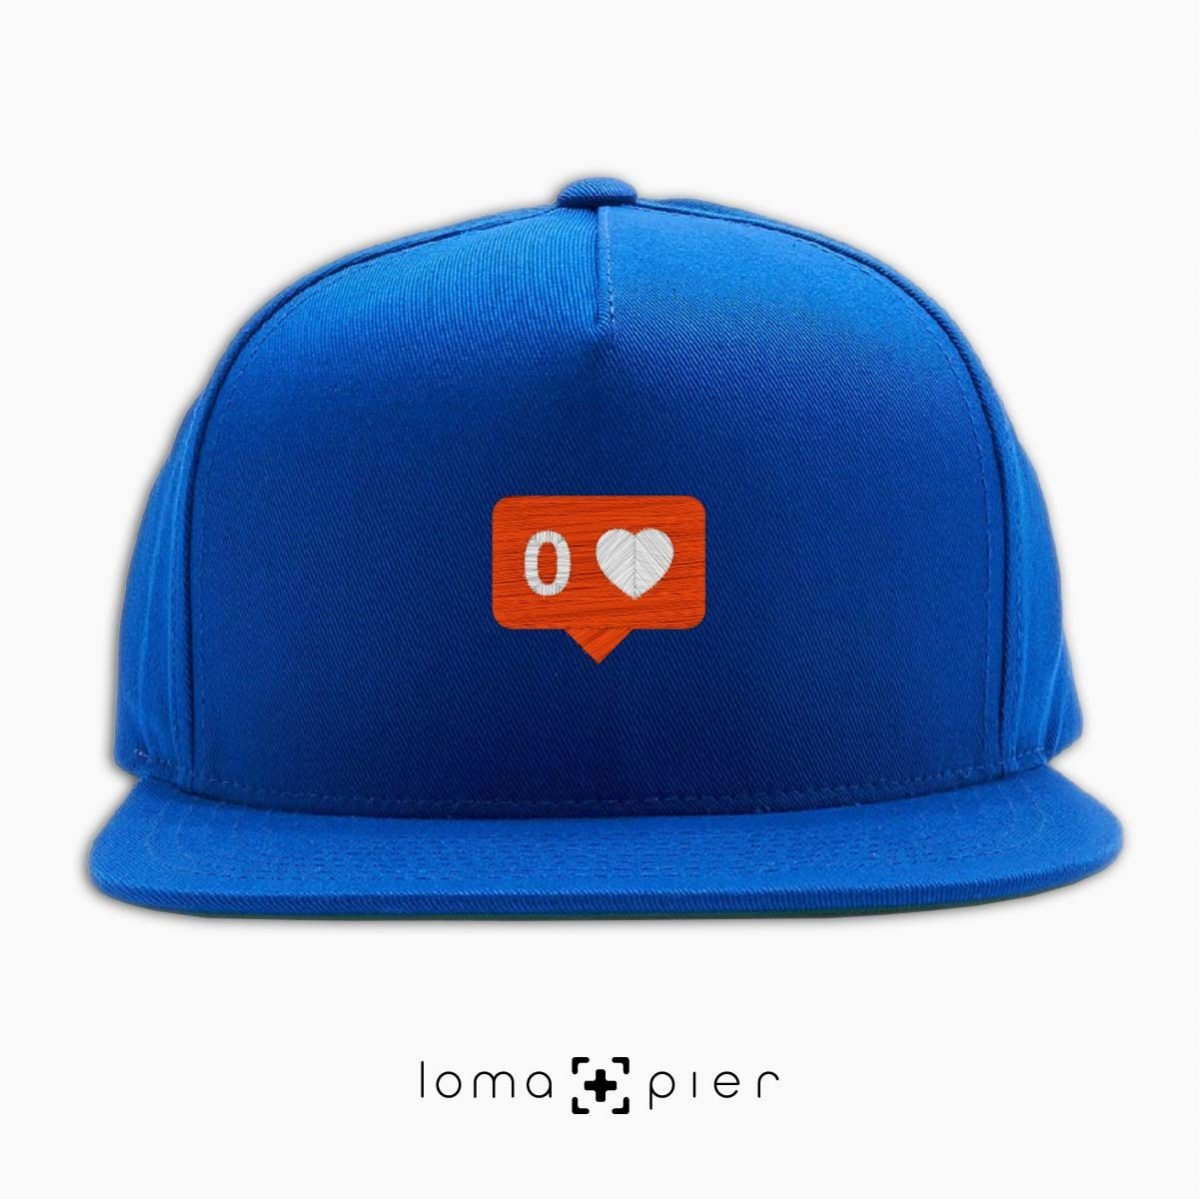 NO LOVE snapback hat in royal blue by lomapier hat store